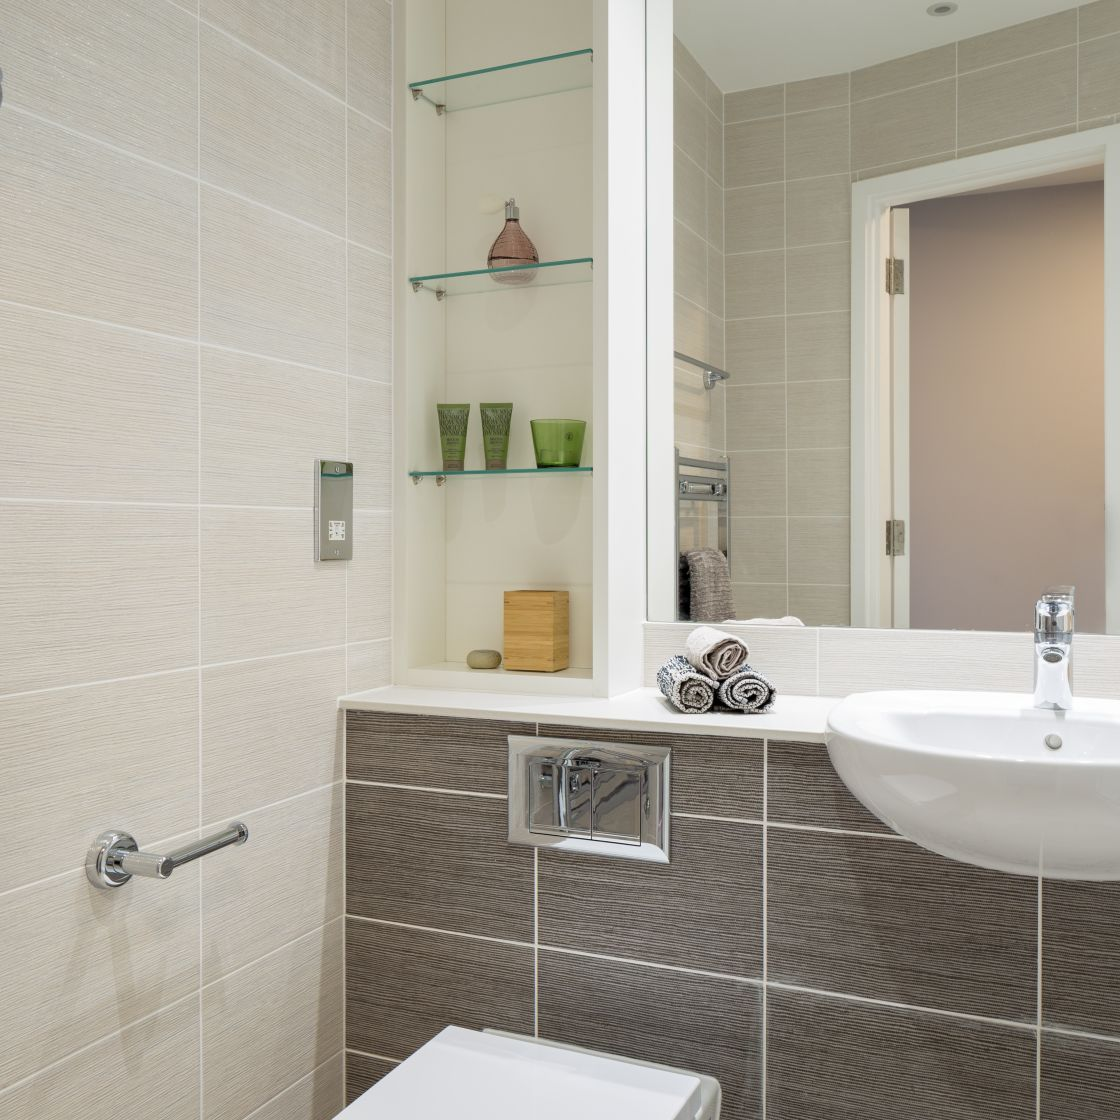 Grande Student Apartment in Liverpool. En-suite bathroom with shower. IconInc, The Ascent